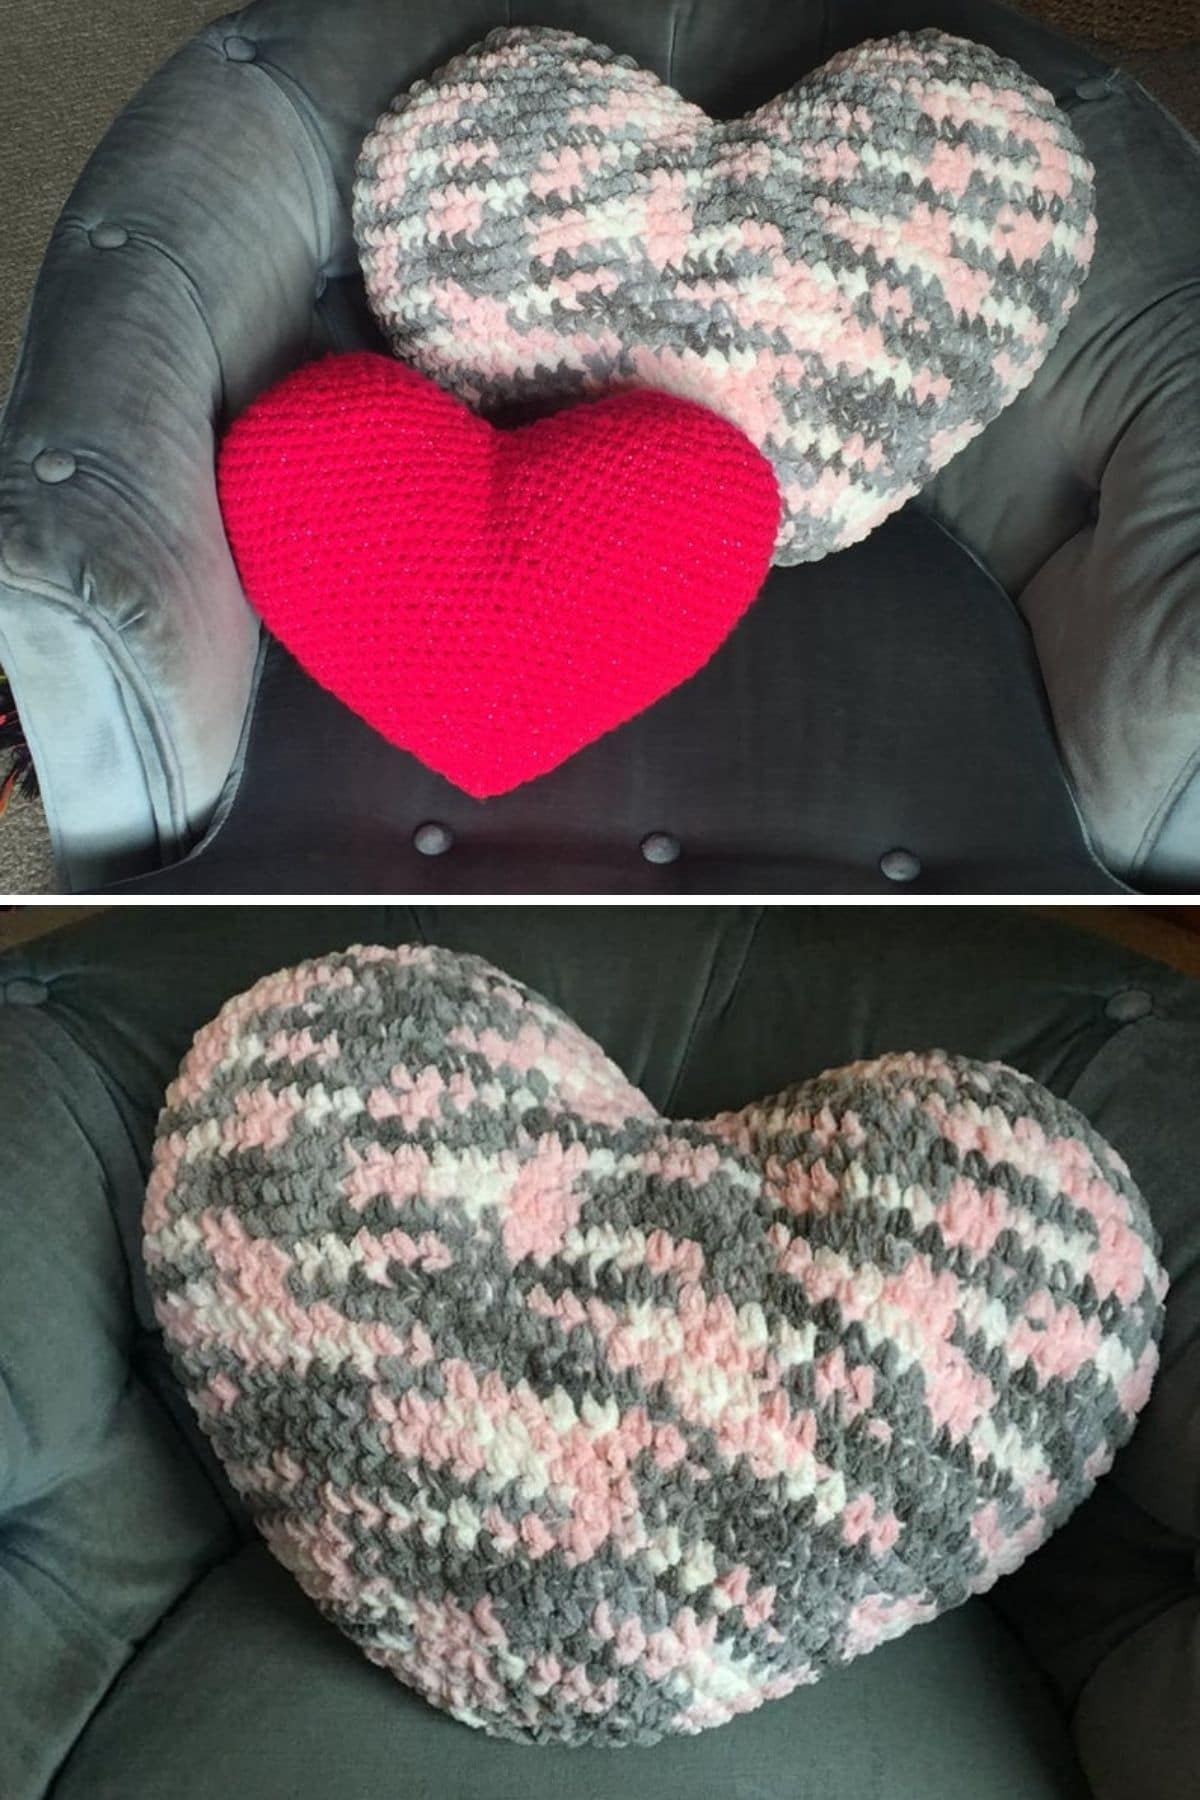 Large pink heart shaped pillow